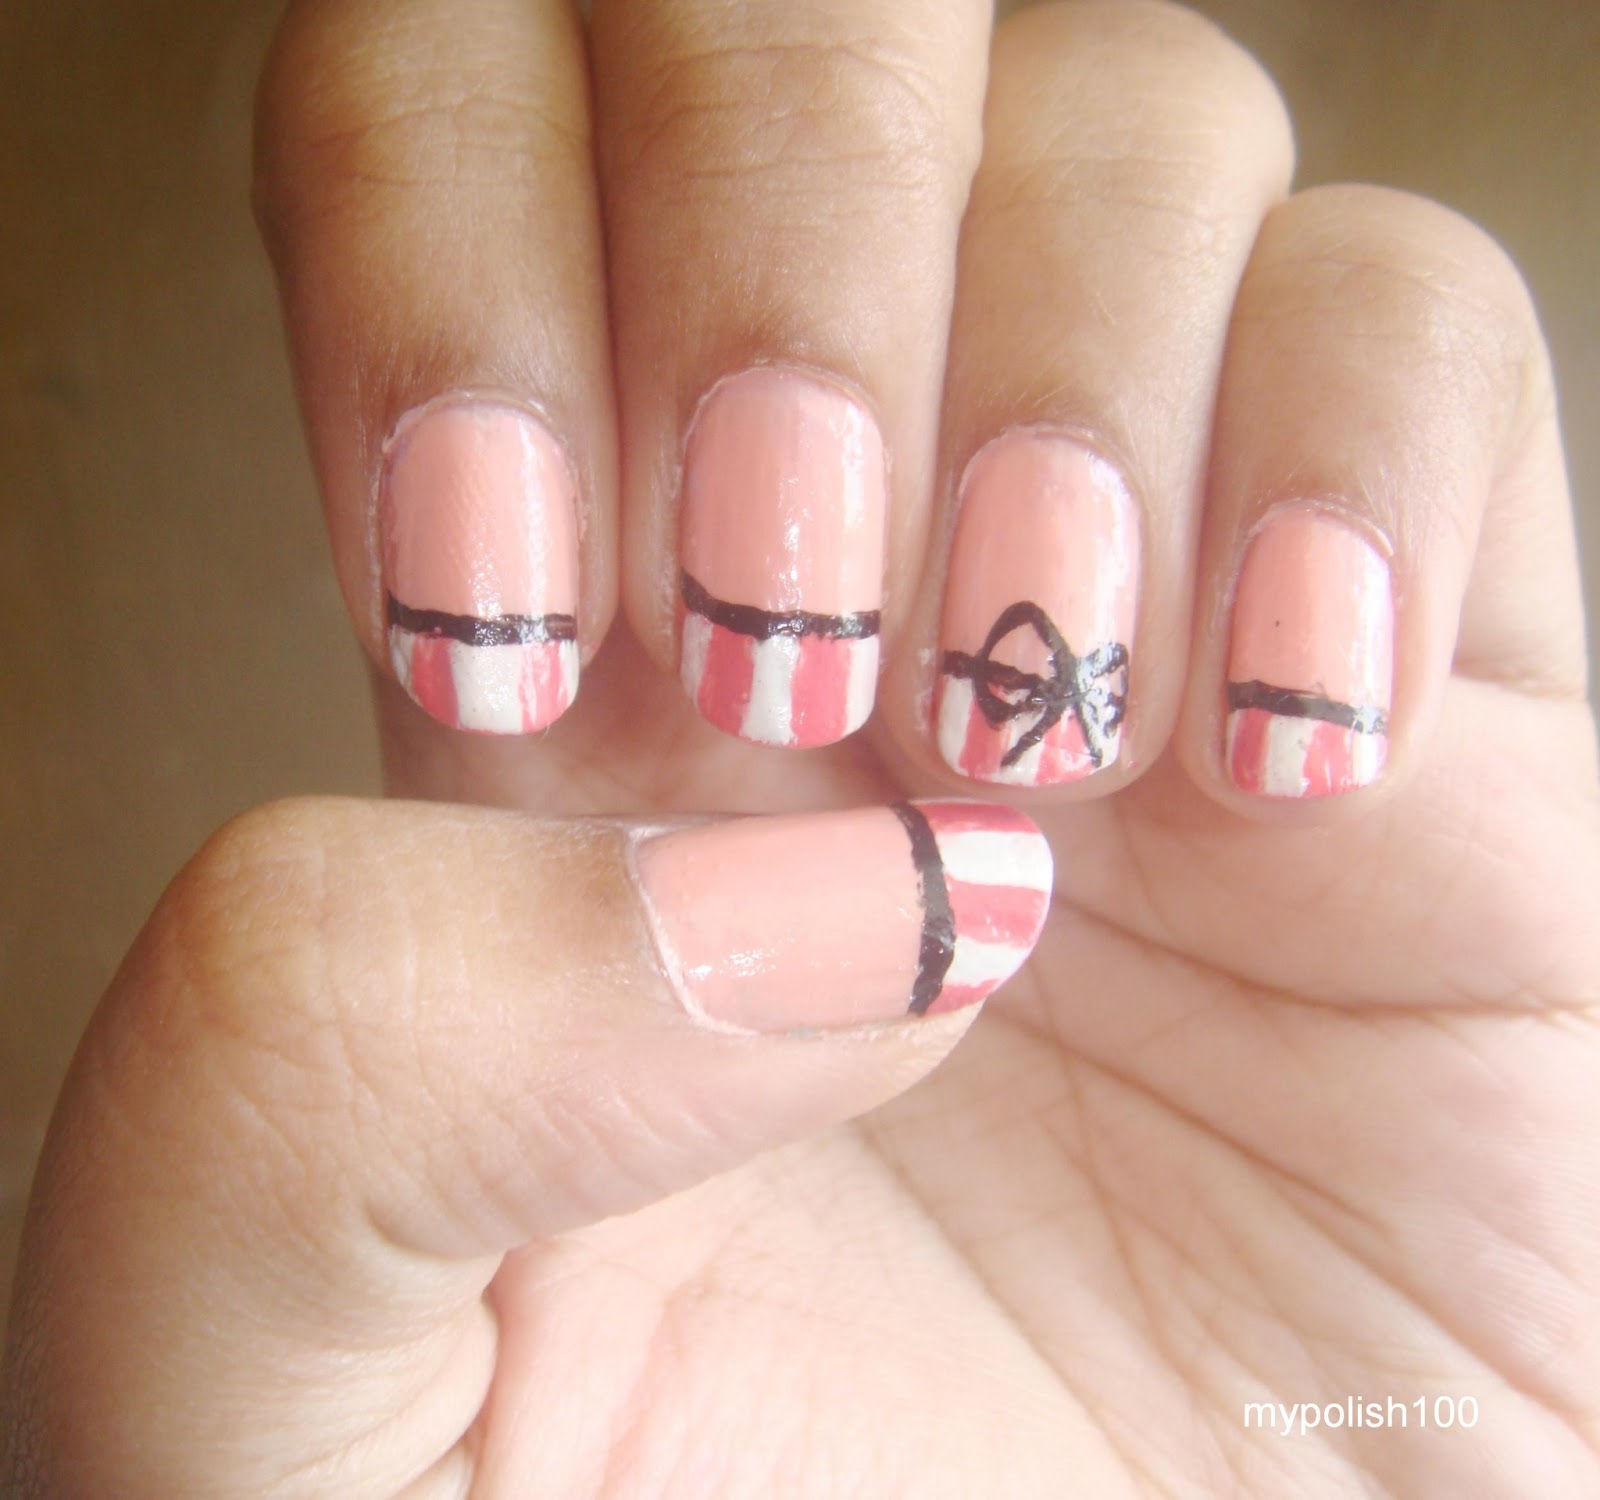 Pinkrafts: PINSTRIPE BOW NAILS TUTORIAL